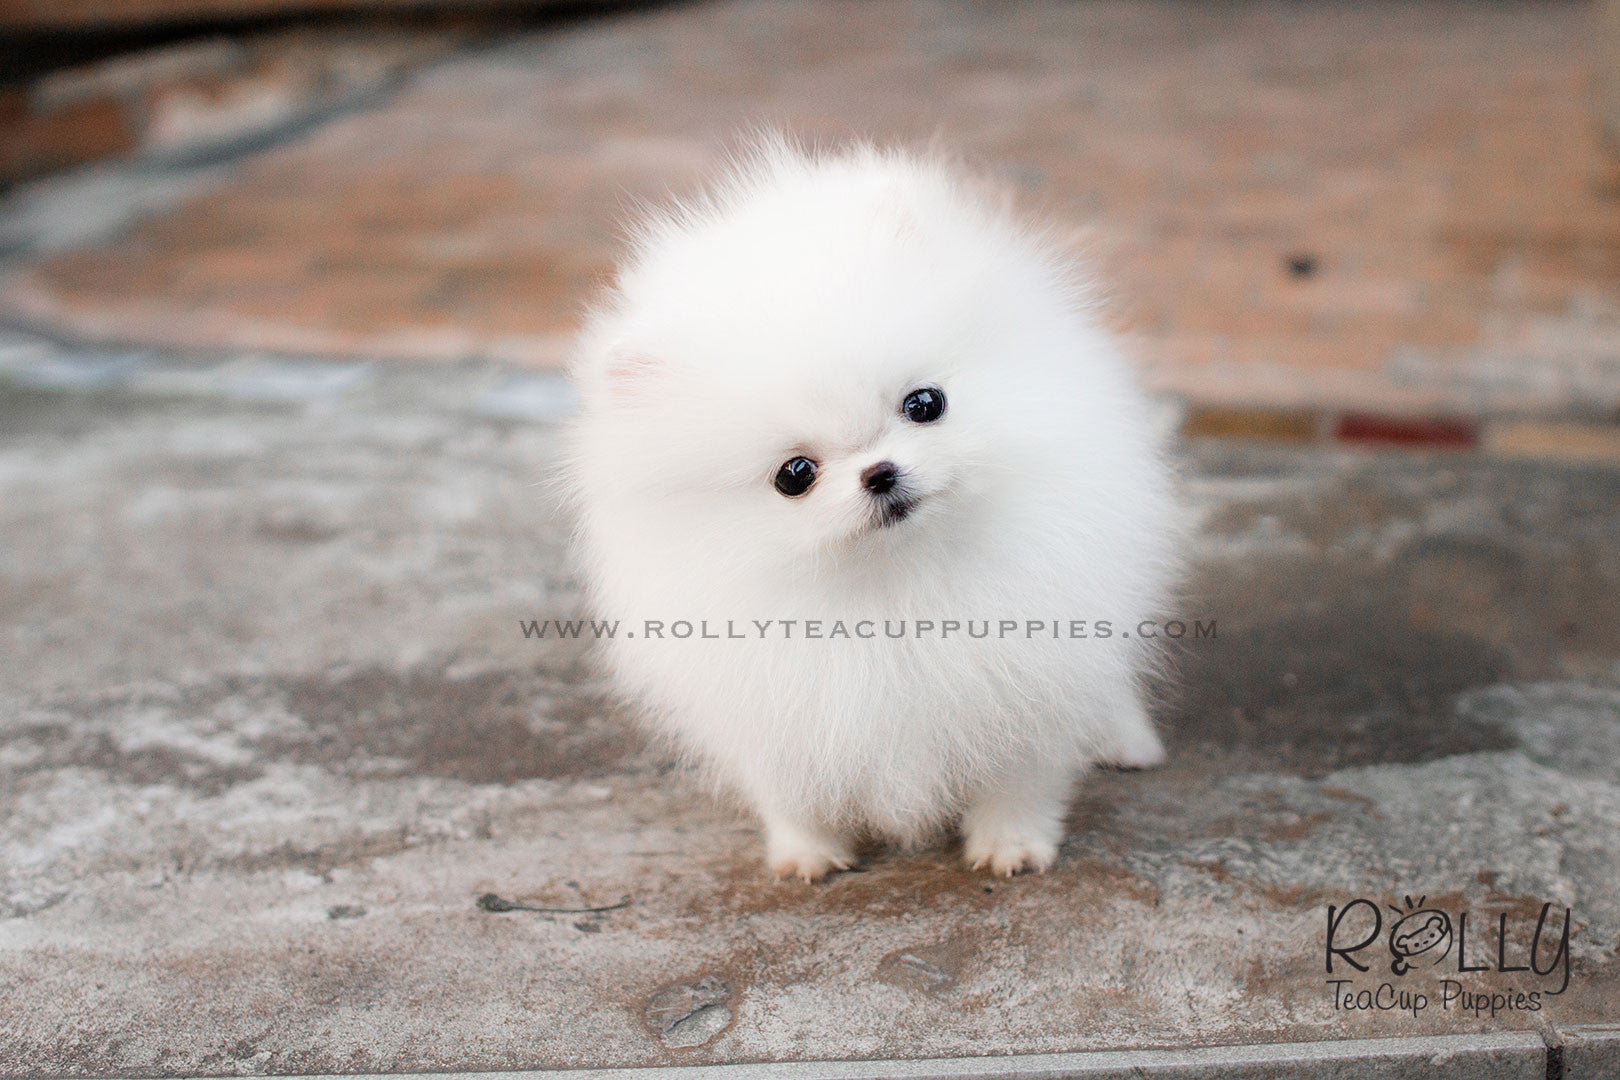 Alice - Pomeranian– Rolly Teacup Puppies